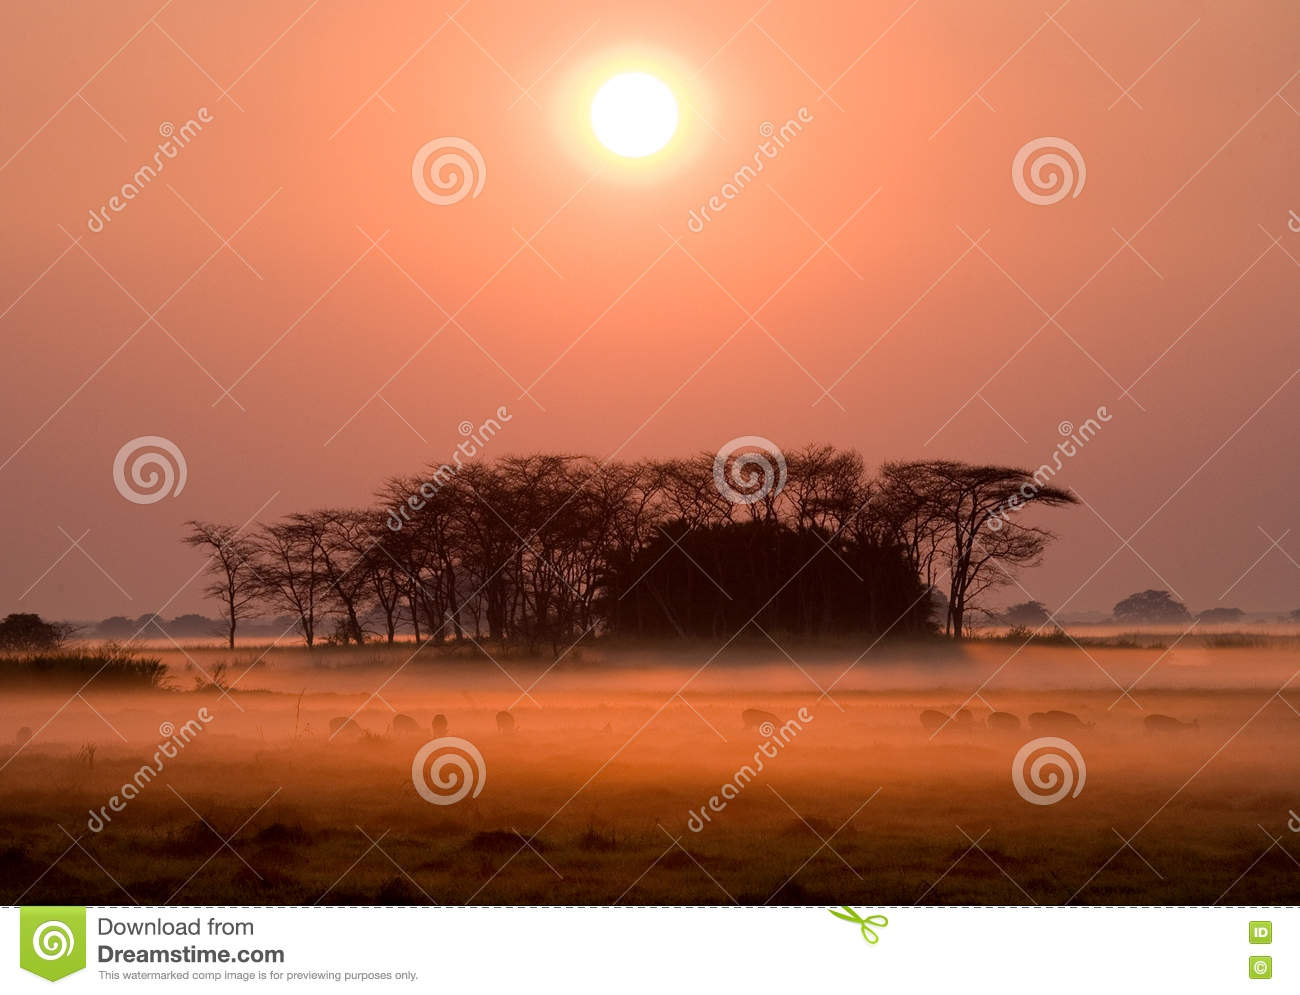 sunrise hindu singles Calculations of sunrise and sunset in new delhi – delhi – india for may 2018 generic astronomy calculator to calculate times for sunrise, sunset, moonrise, moonset for many cities, with daylight saving time and time zones taken in account.